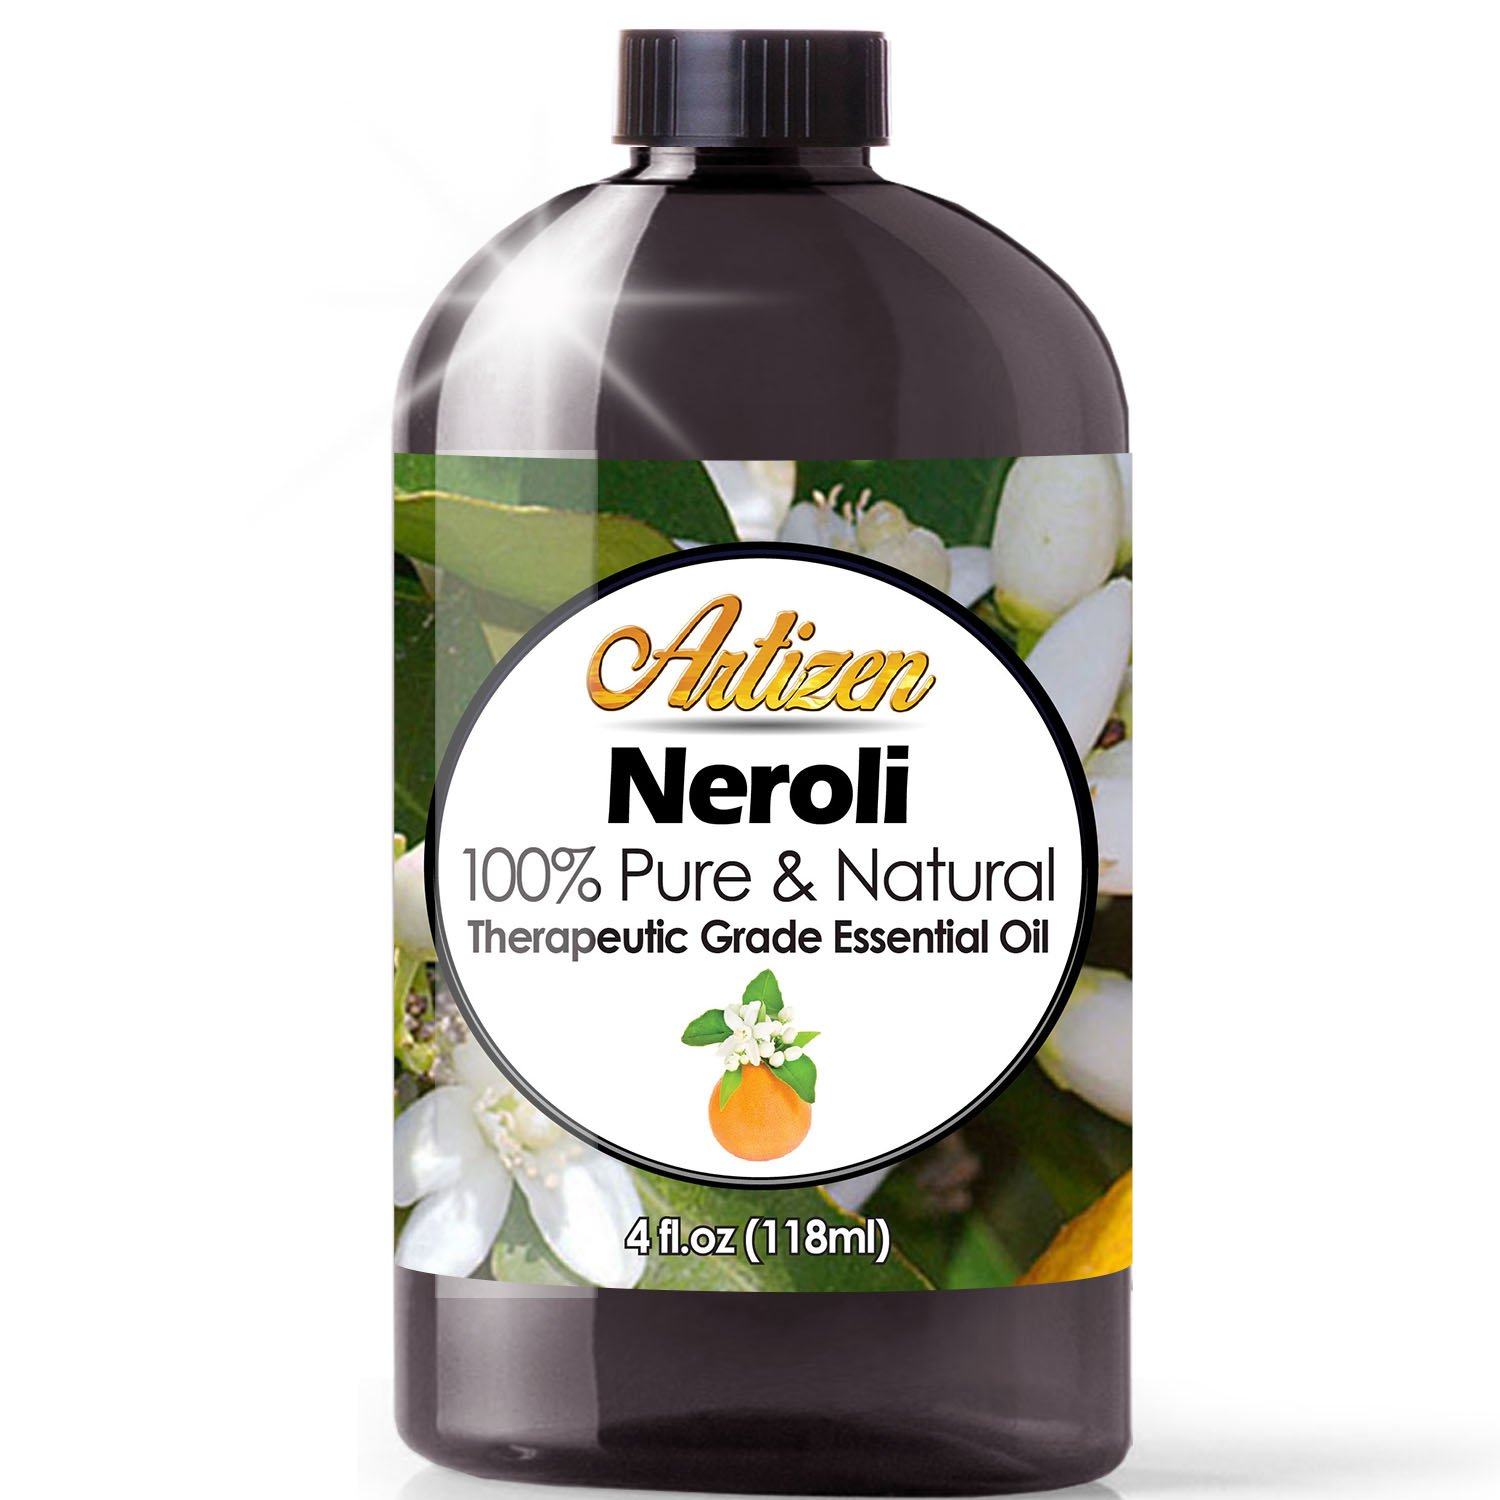 Artizen Neroli Essential Oil (100% Pure & Natural - UNDILUTED) Therapeutic Grade - Huge 4oz Bottle - Perfect for Aromatherapy, Relaxation, Skin Therapy & More! by Artizen